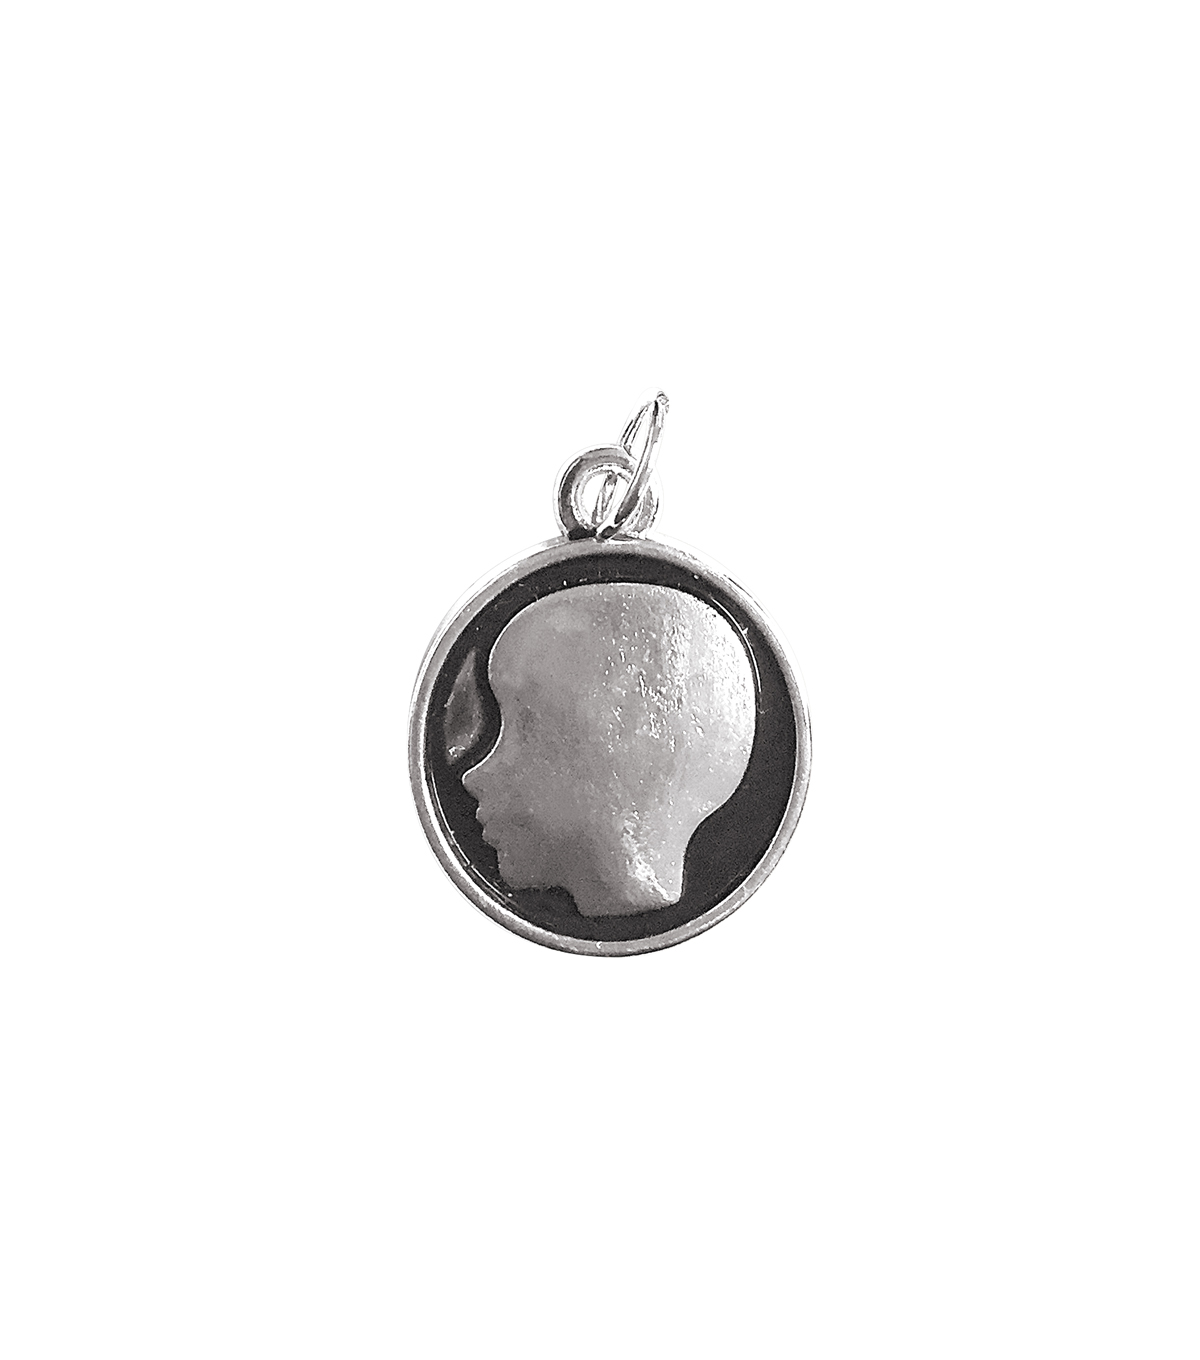 Blue Moon Beads Single Charm Silhouette Boy Silver